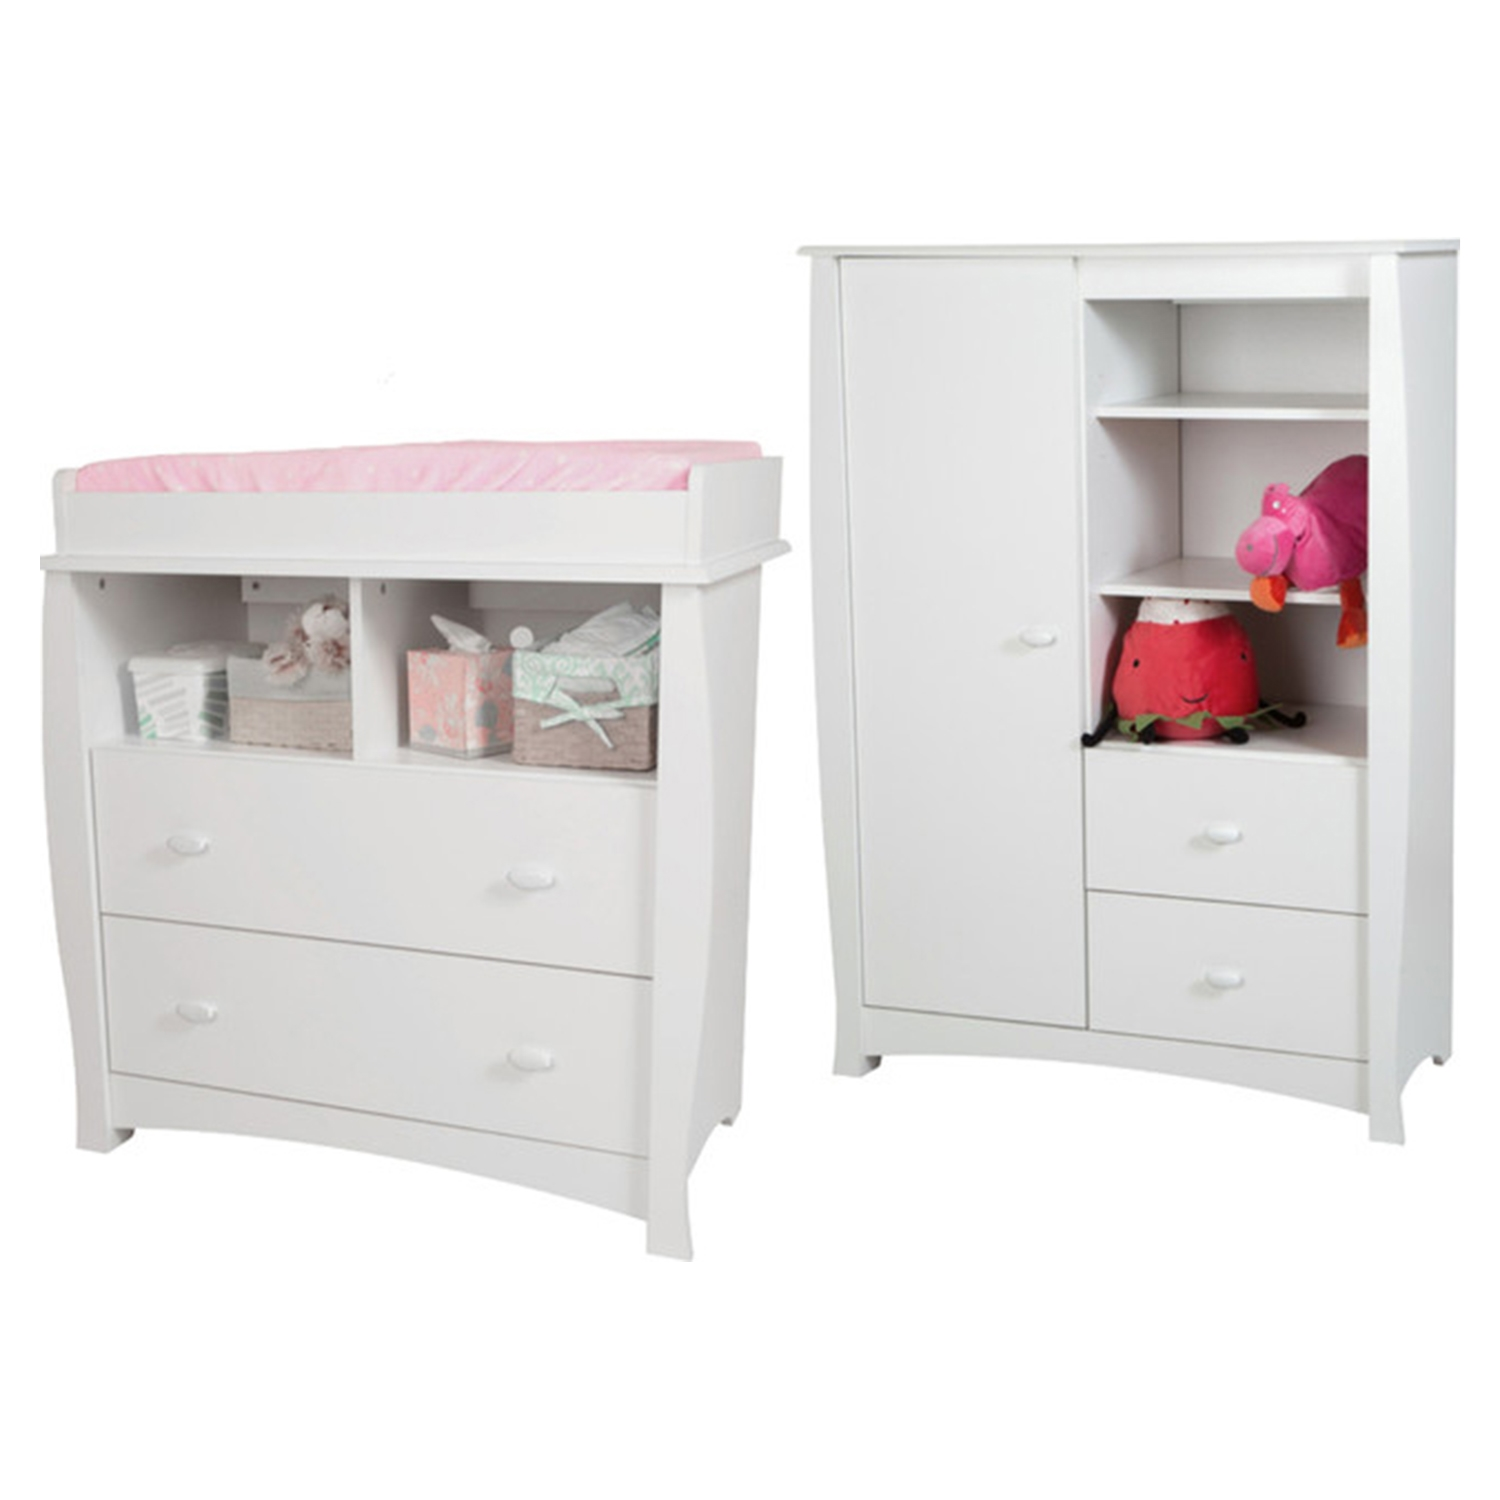 Beehive Changing Table and Armoire - Removable Station, Pure White - SS-3640B2